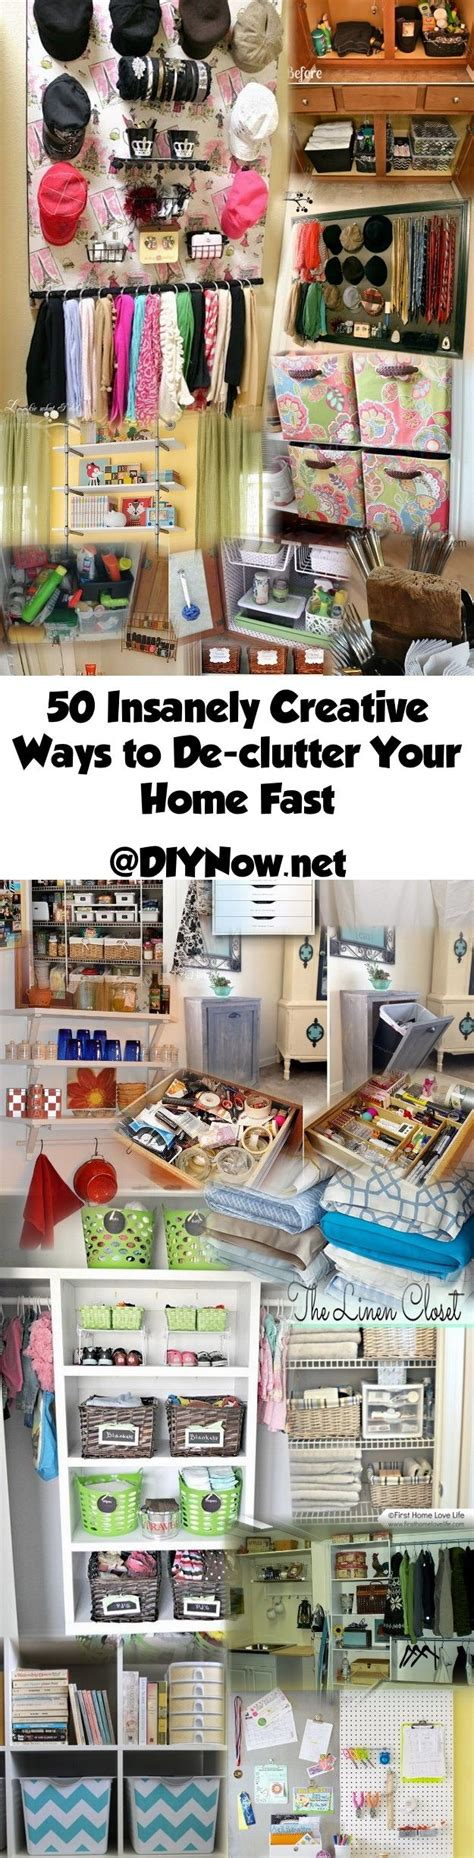 50 Insanely Creative Ways to Declutter Your Home Fast